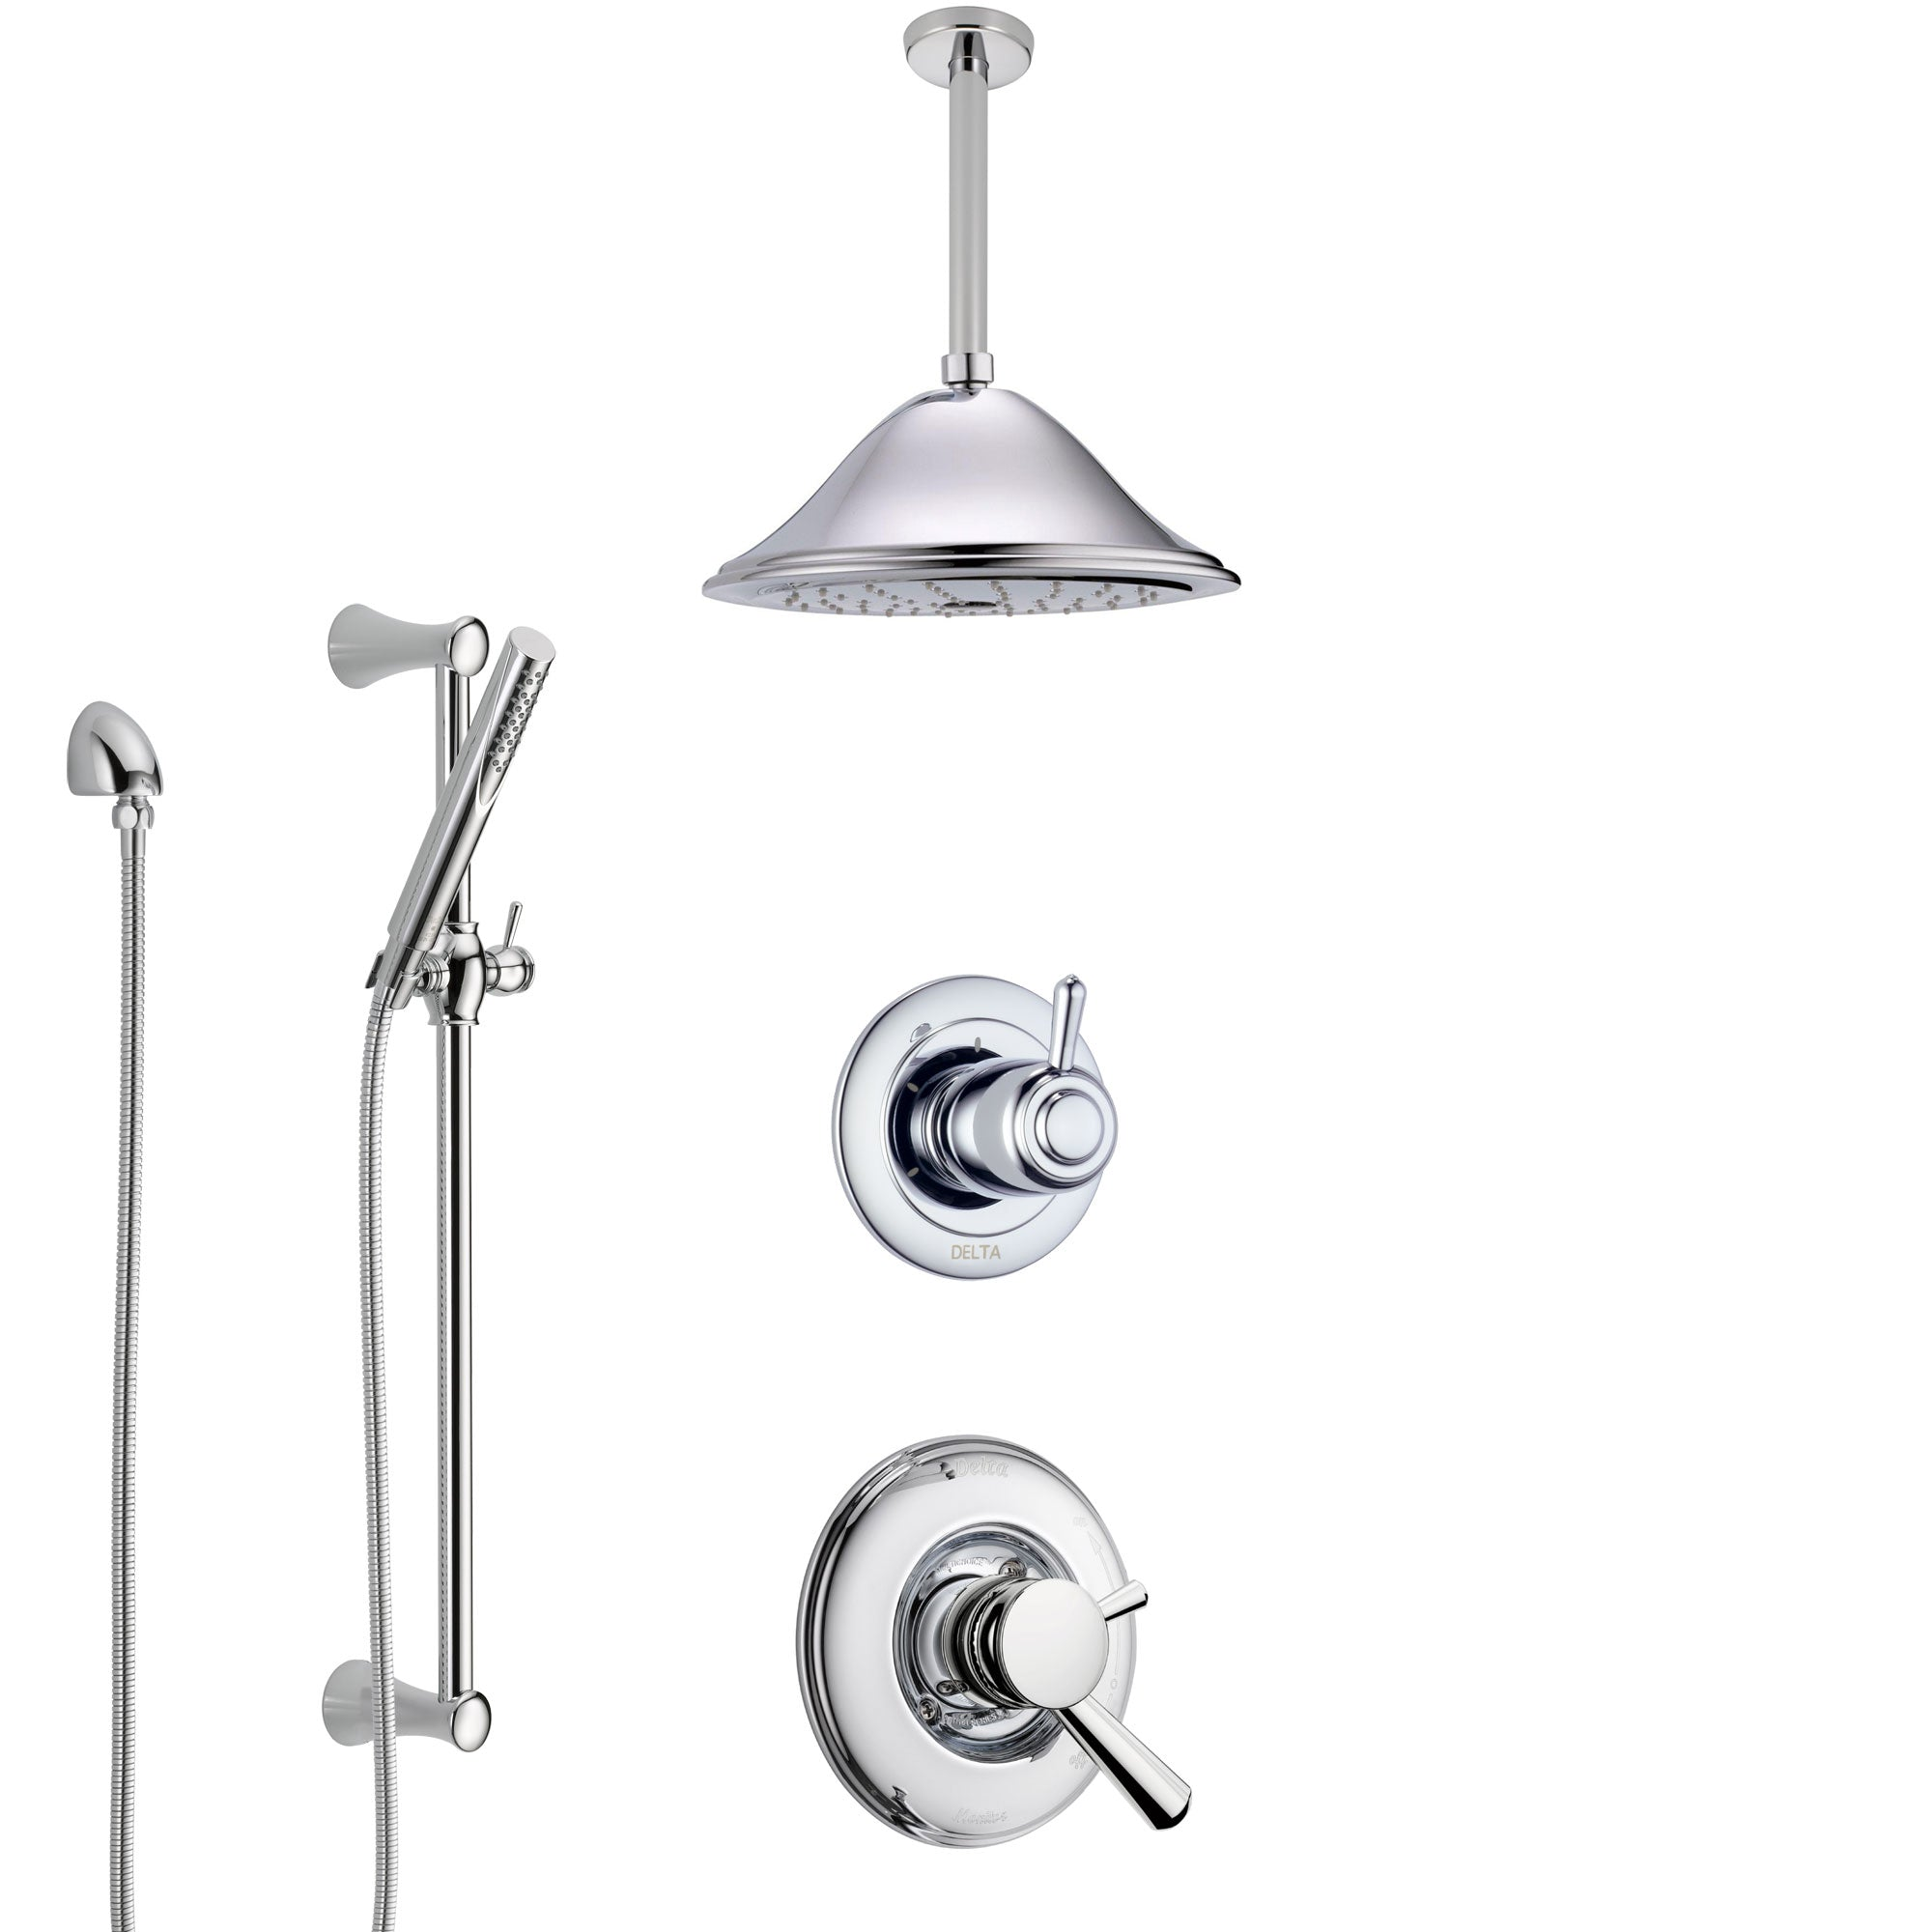 Delta Linden Chrome Finish Shower System with Dual Control Handle, 3-Setting Diverter, Ceiling Mount Showerhead, and Hand Shower with Slidebar SS17931